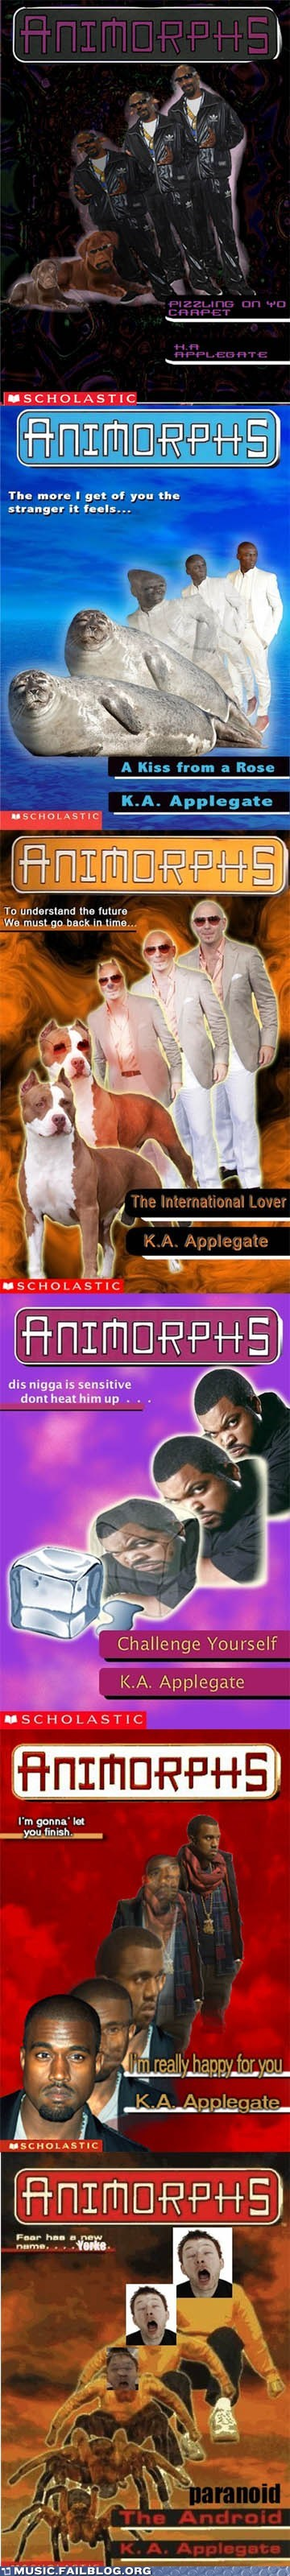 animorphs ice cube kanye west pitbull radiohead seal snoop dogg Thom Yorke - 6438029568